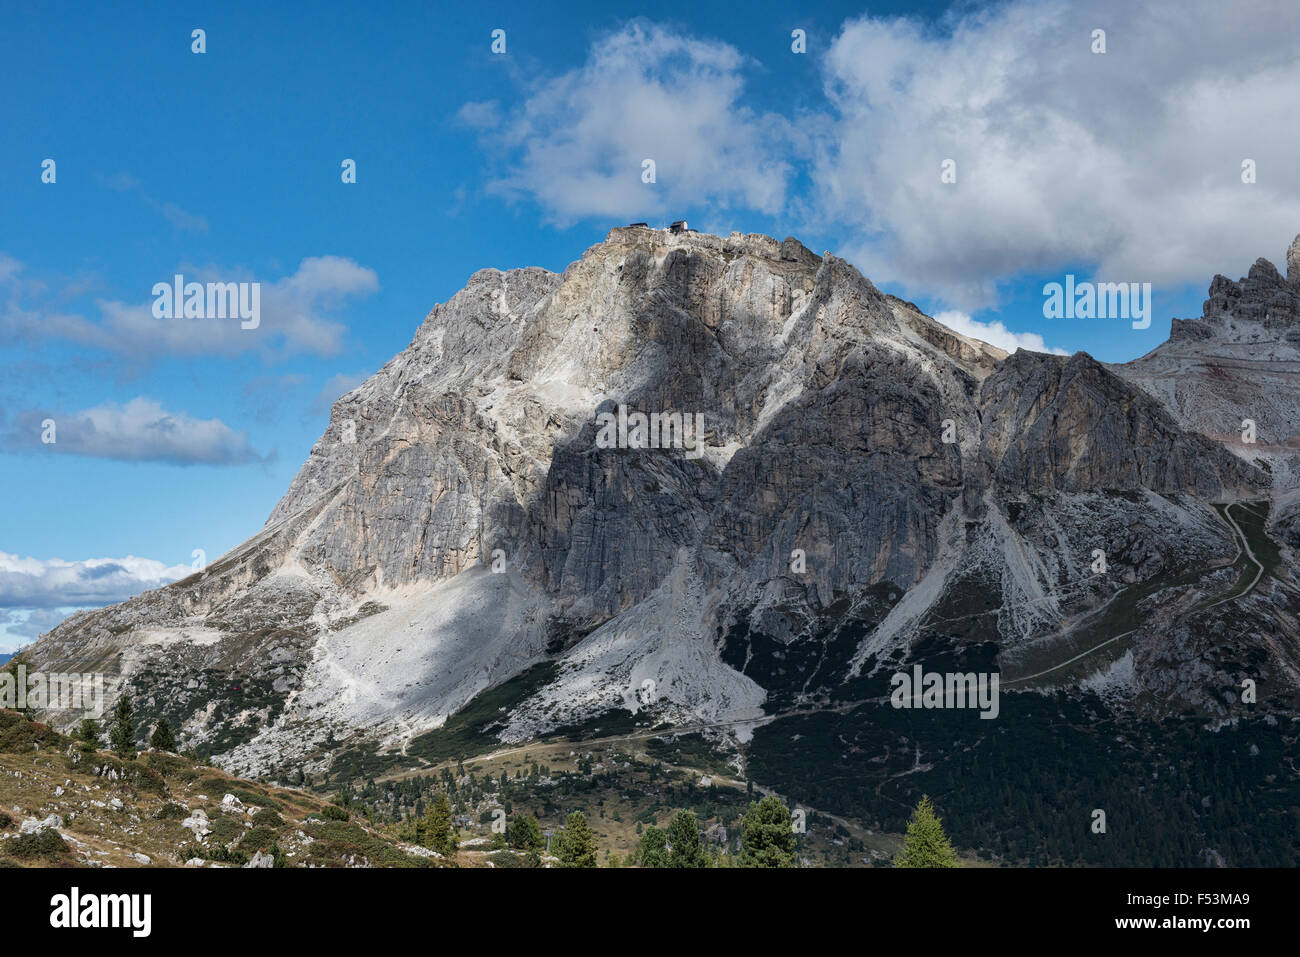 Looking out at the Lagazuoi Refuge from Nuvolau, Dolomites, Belluno, Italy - Stock Image